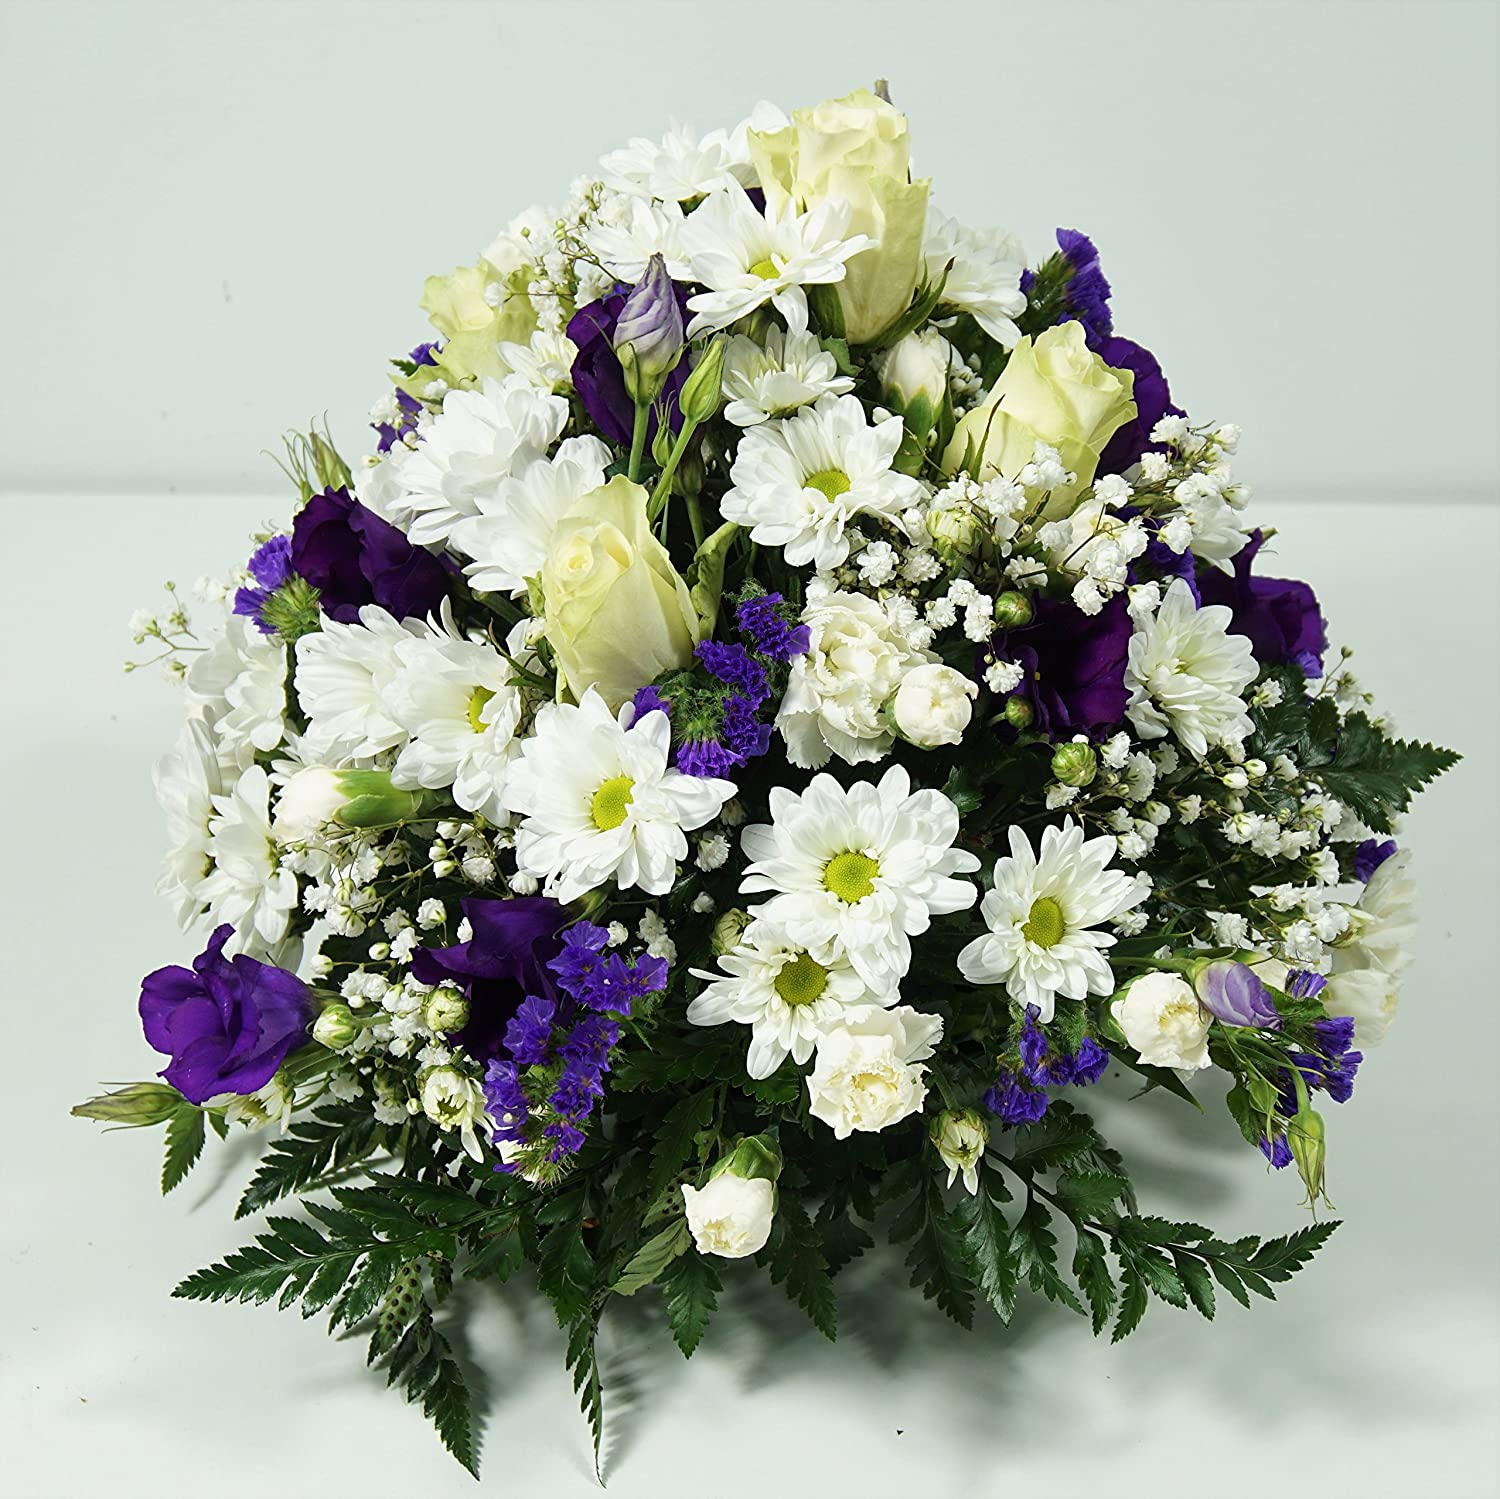 Funeral Flower Posy Delivered Next Day Uk Free In 1hr Timeslot